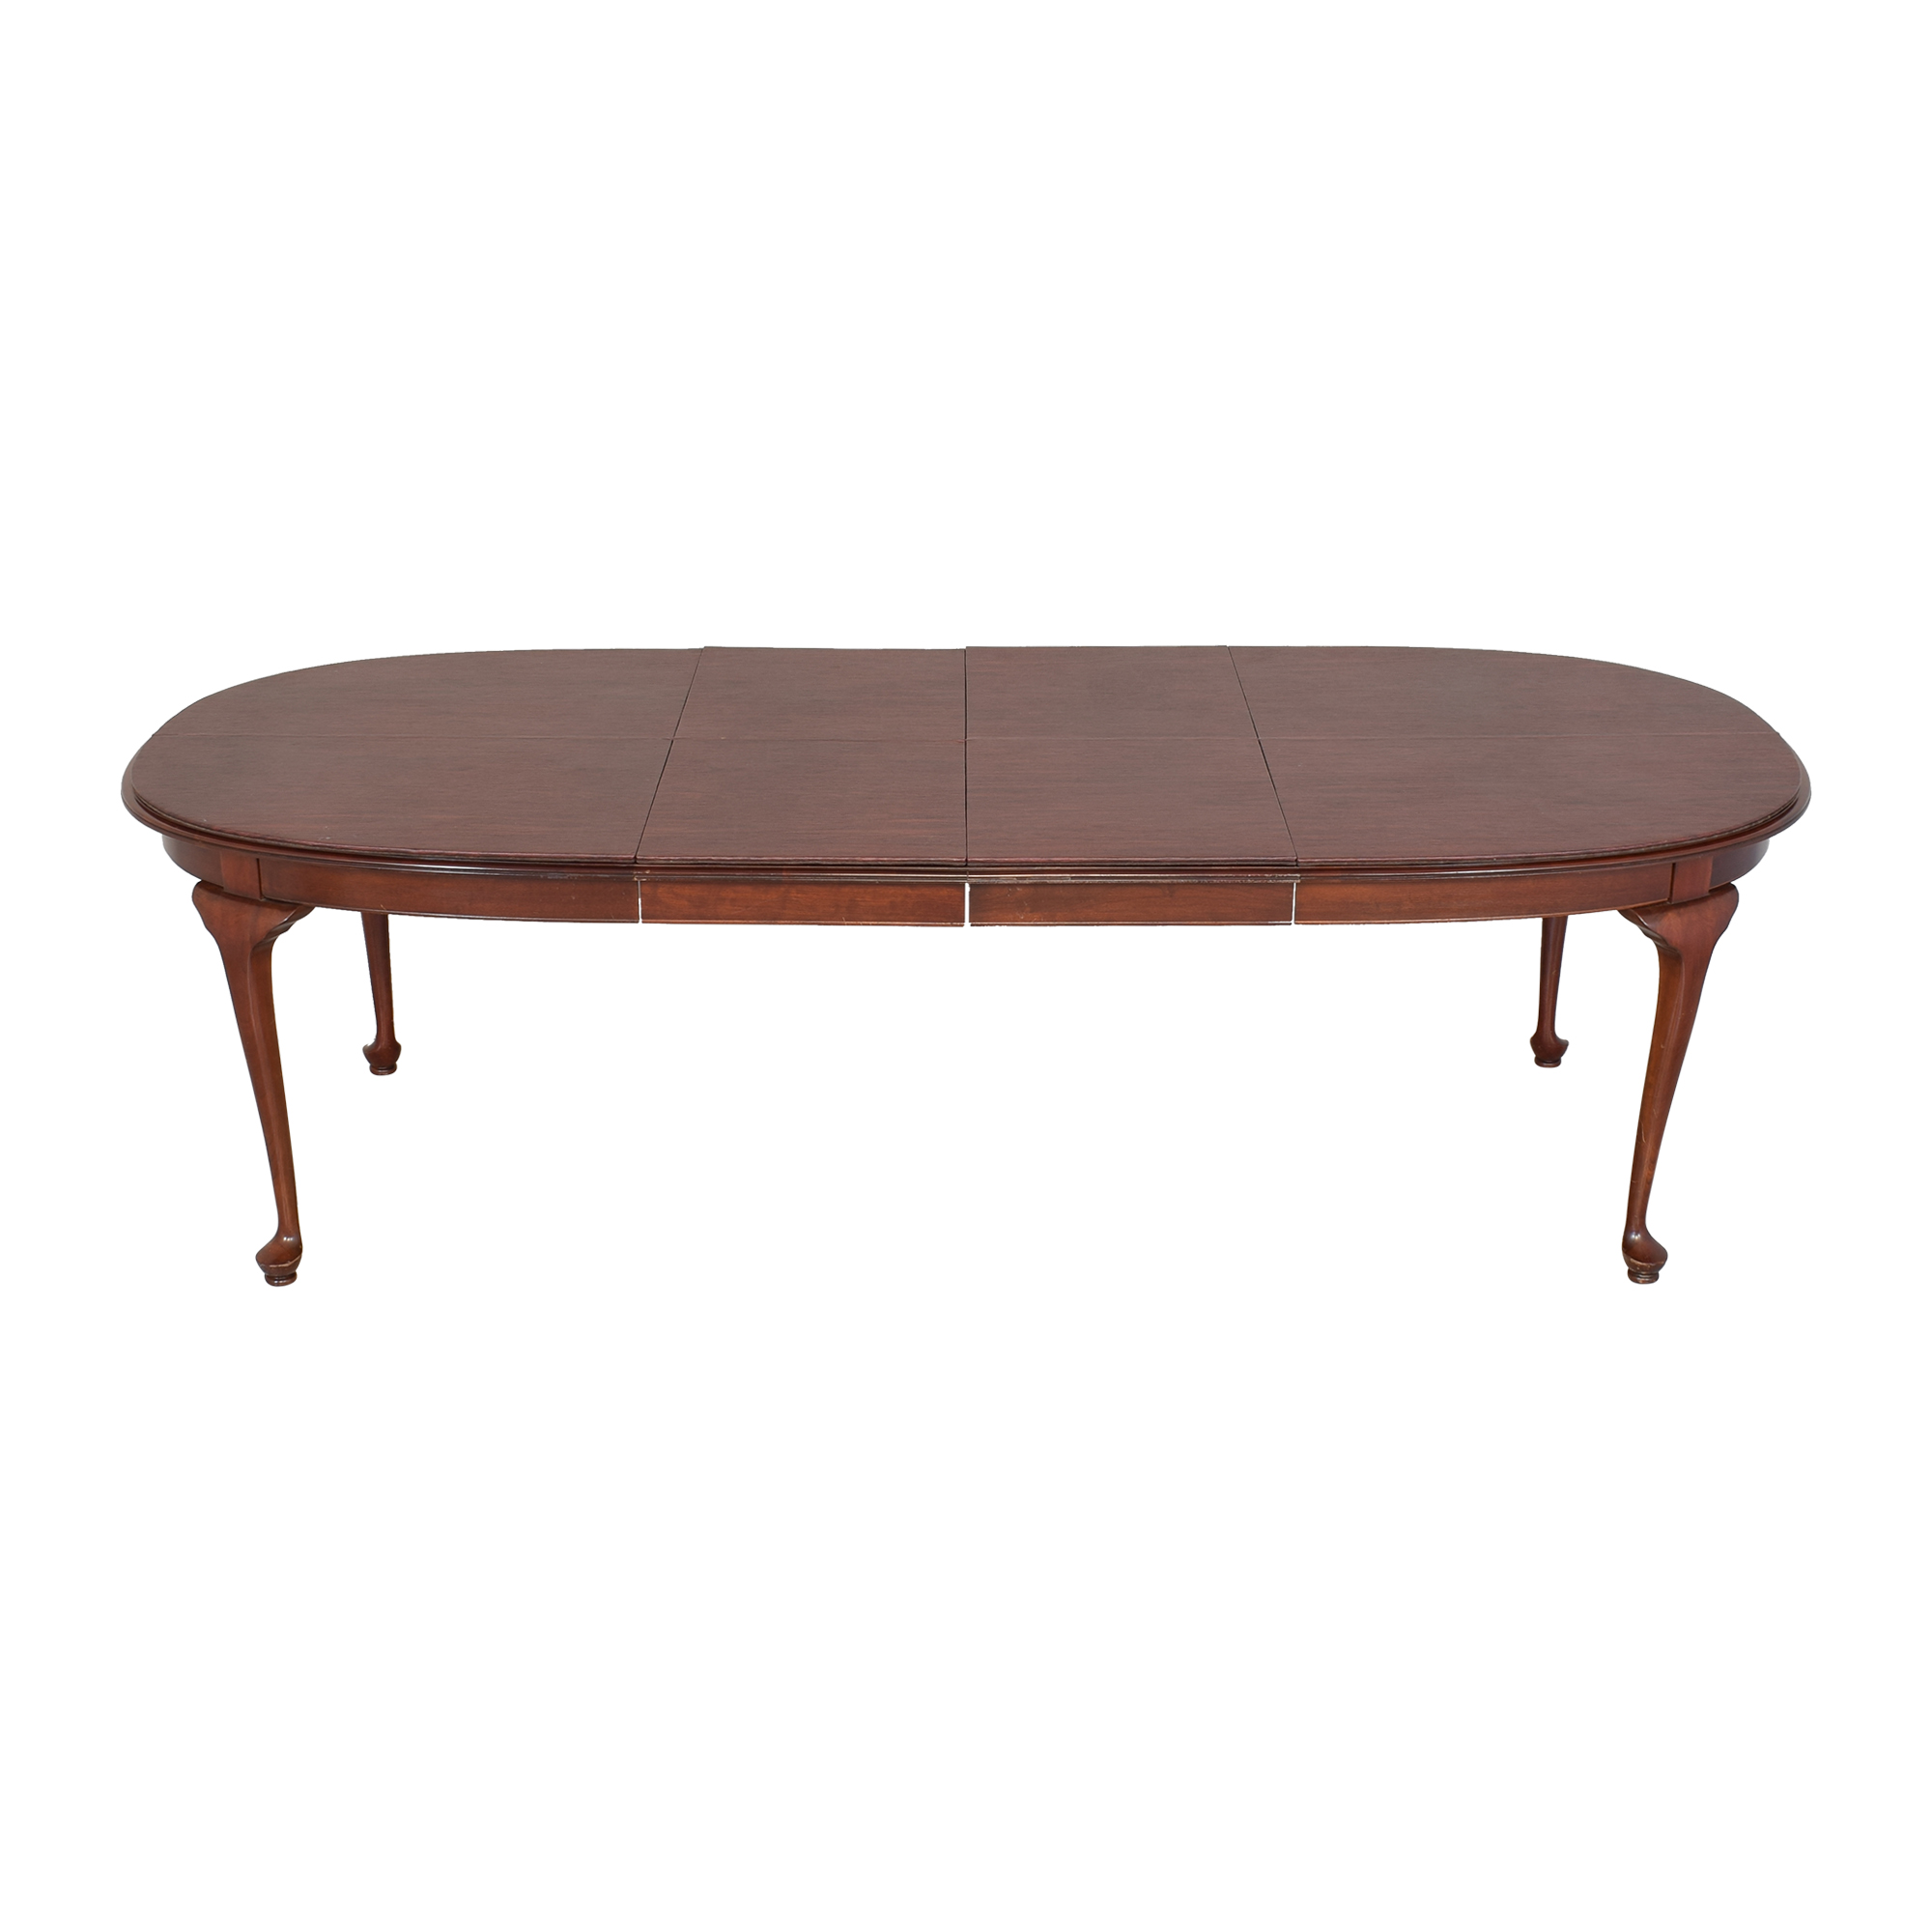 Knob Creek Knob Creek Queen Anne Expandable Dining Table on sale